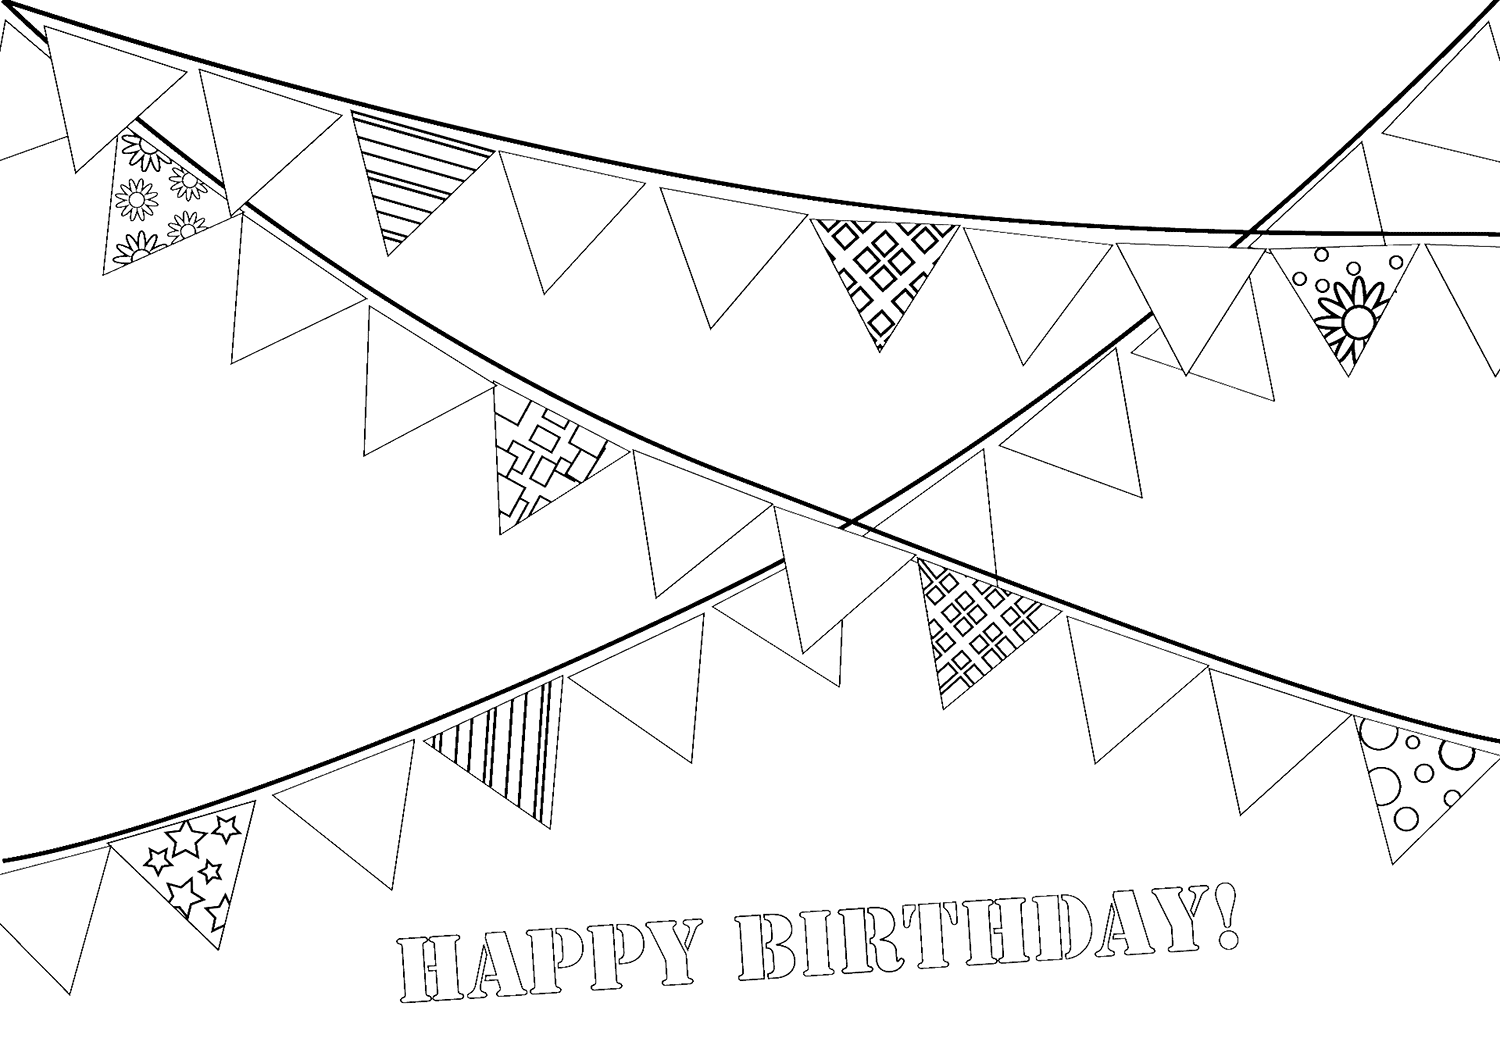 Garland coloring pages to download and print for free